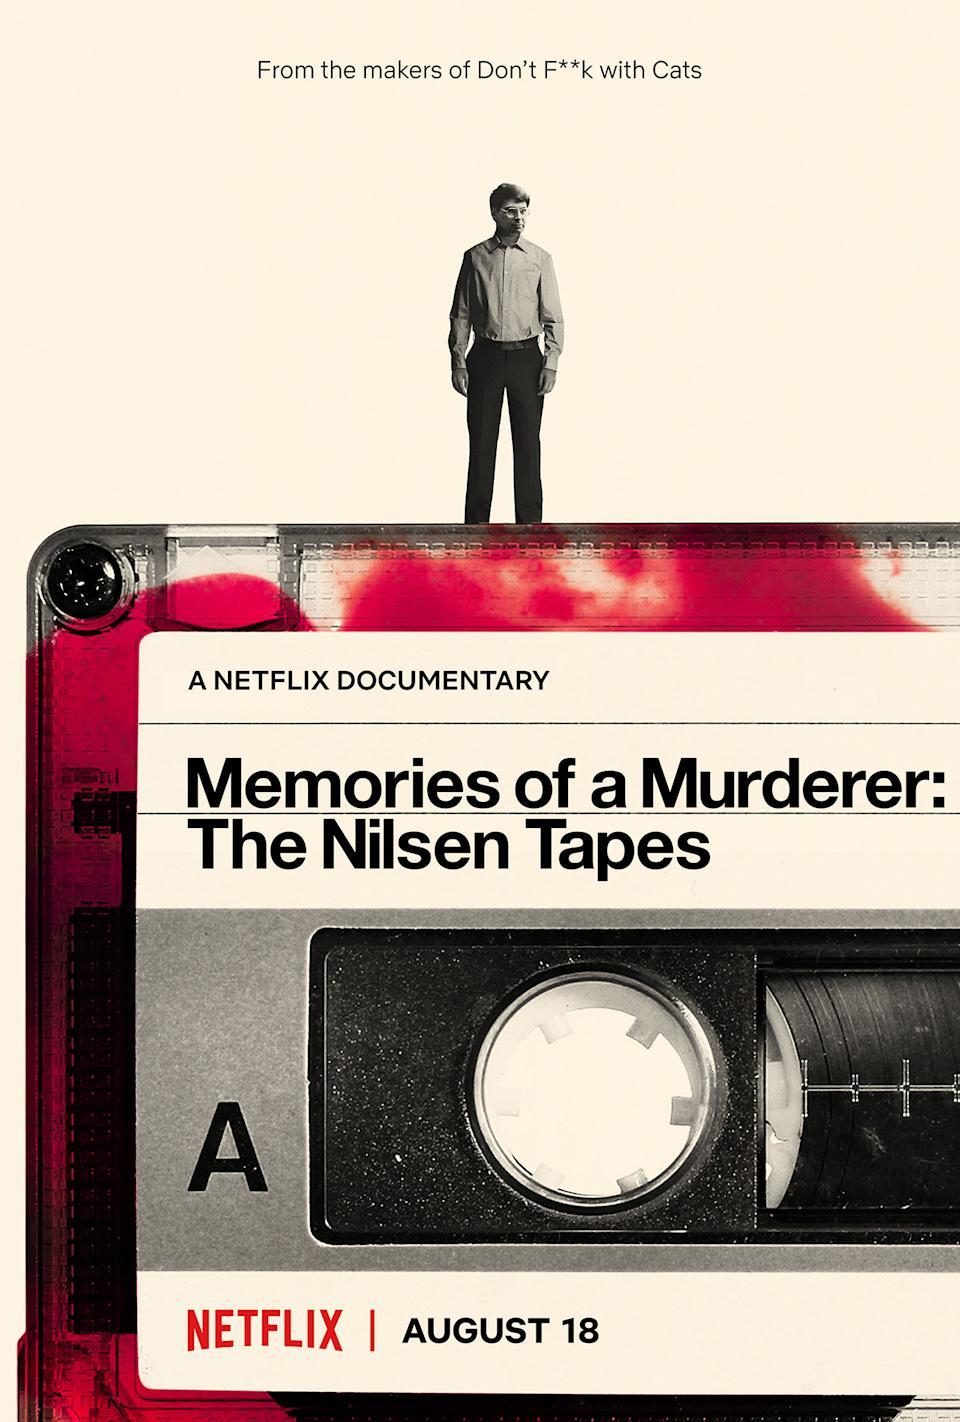 Memories of a Murderer: The Nilsen Tapes launches on Netflix on 18 August (Netflix)